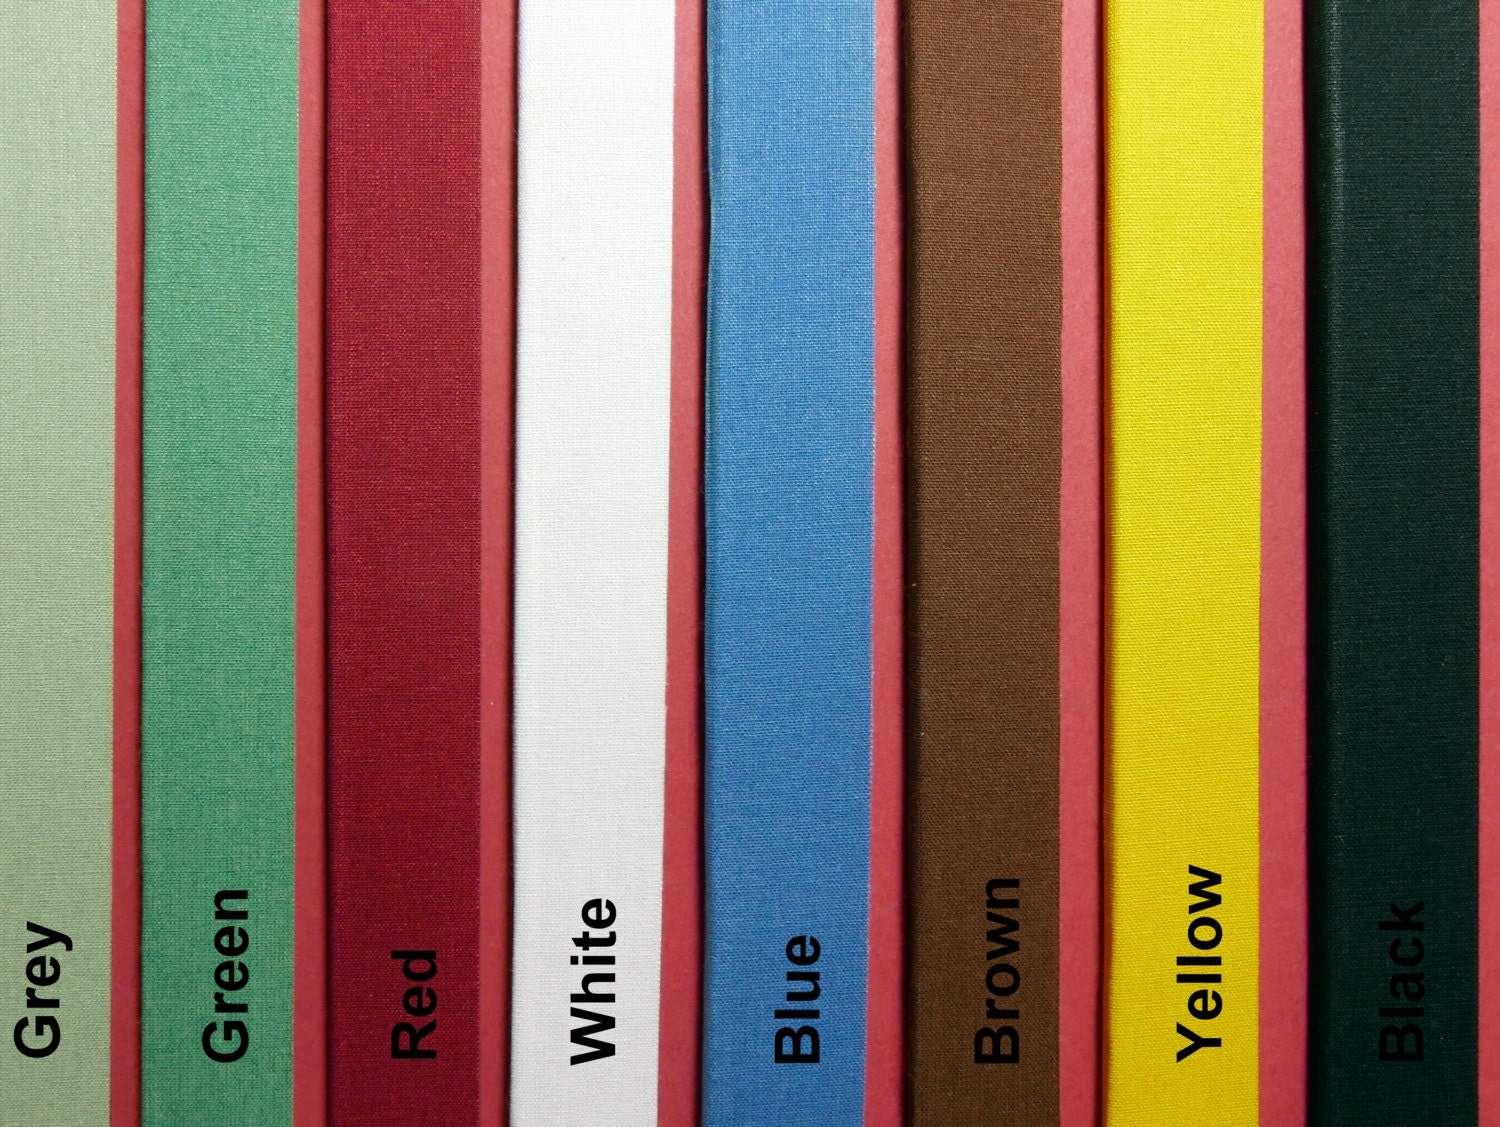 Glue Fabric Book Cover : Self adhesive fabric book cloth for bookbinding and